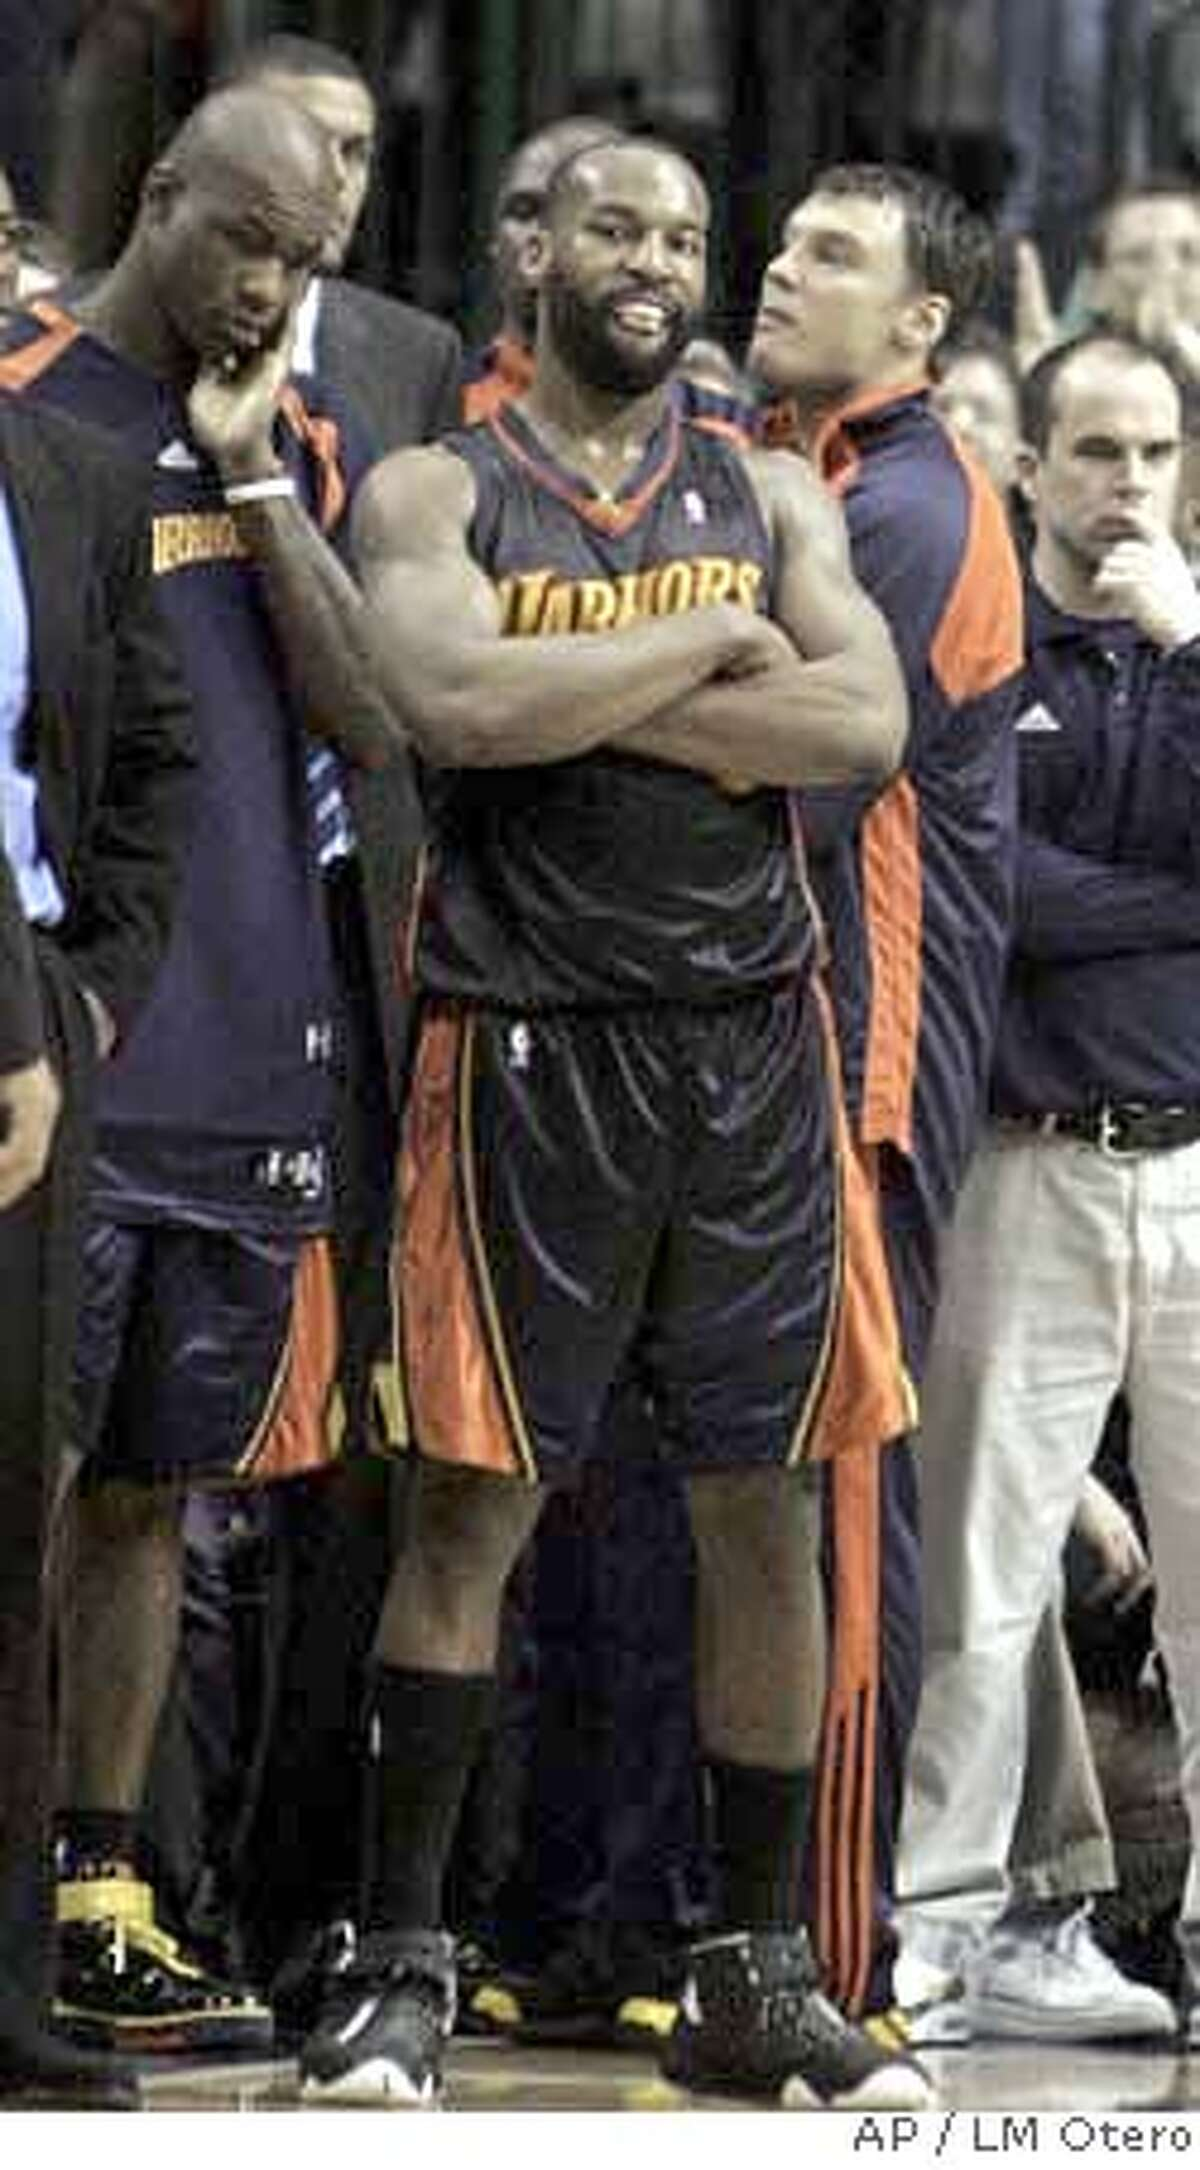 Golden State Warriors Baron Davis watches from the bench after fouling out in the fourth quarter of the playoff basketball game against the Dallas Mavericks in Dallas, Tuesday, May 1, 2007. The Mavericks won 1198-112. (AP Photo/LM Otero) EFE OUT